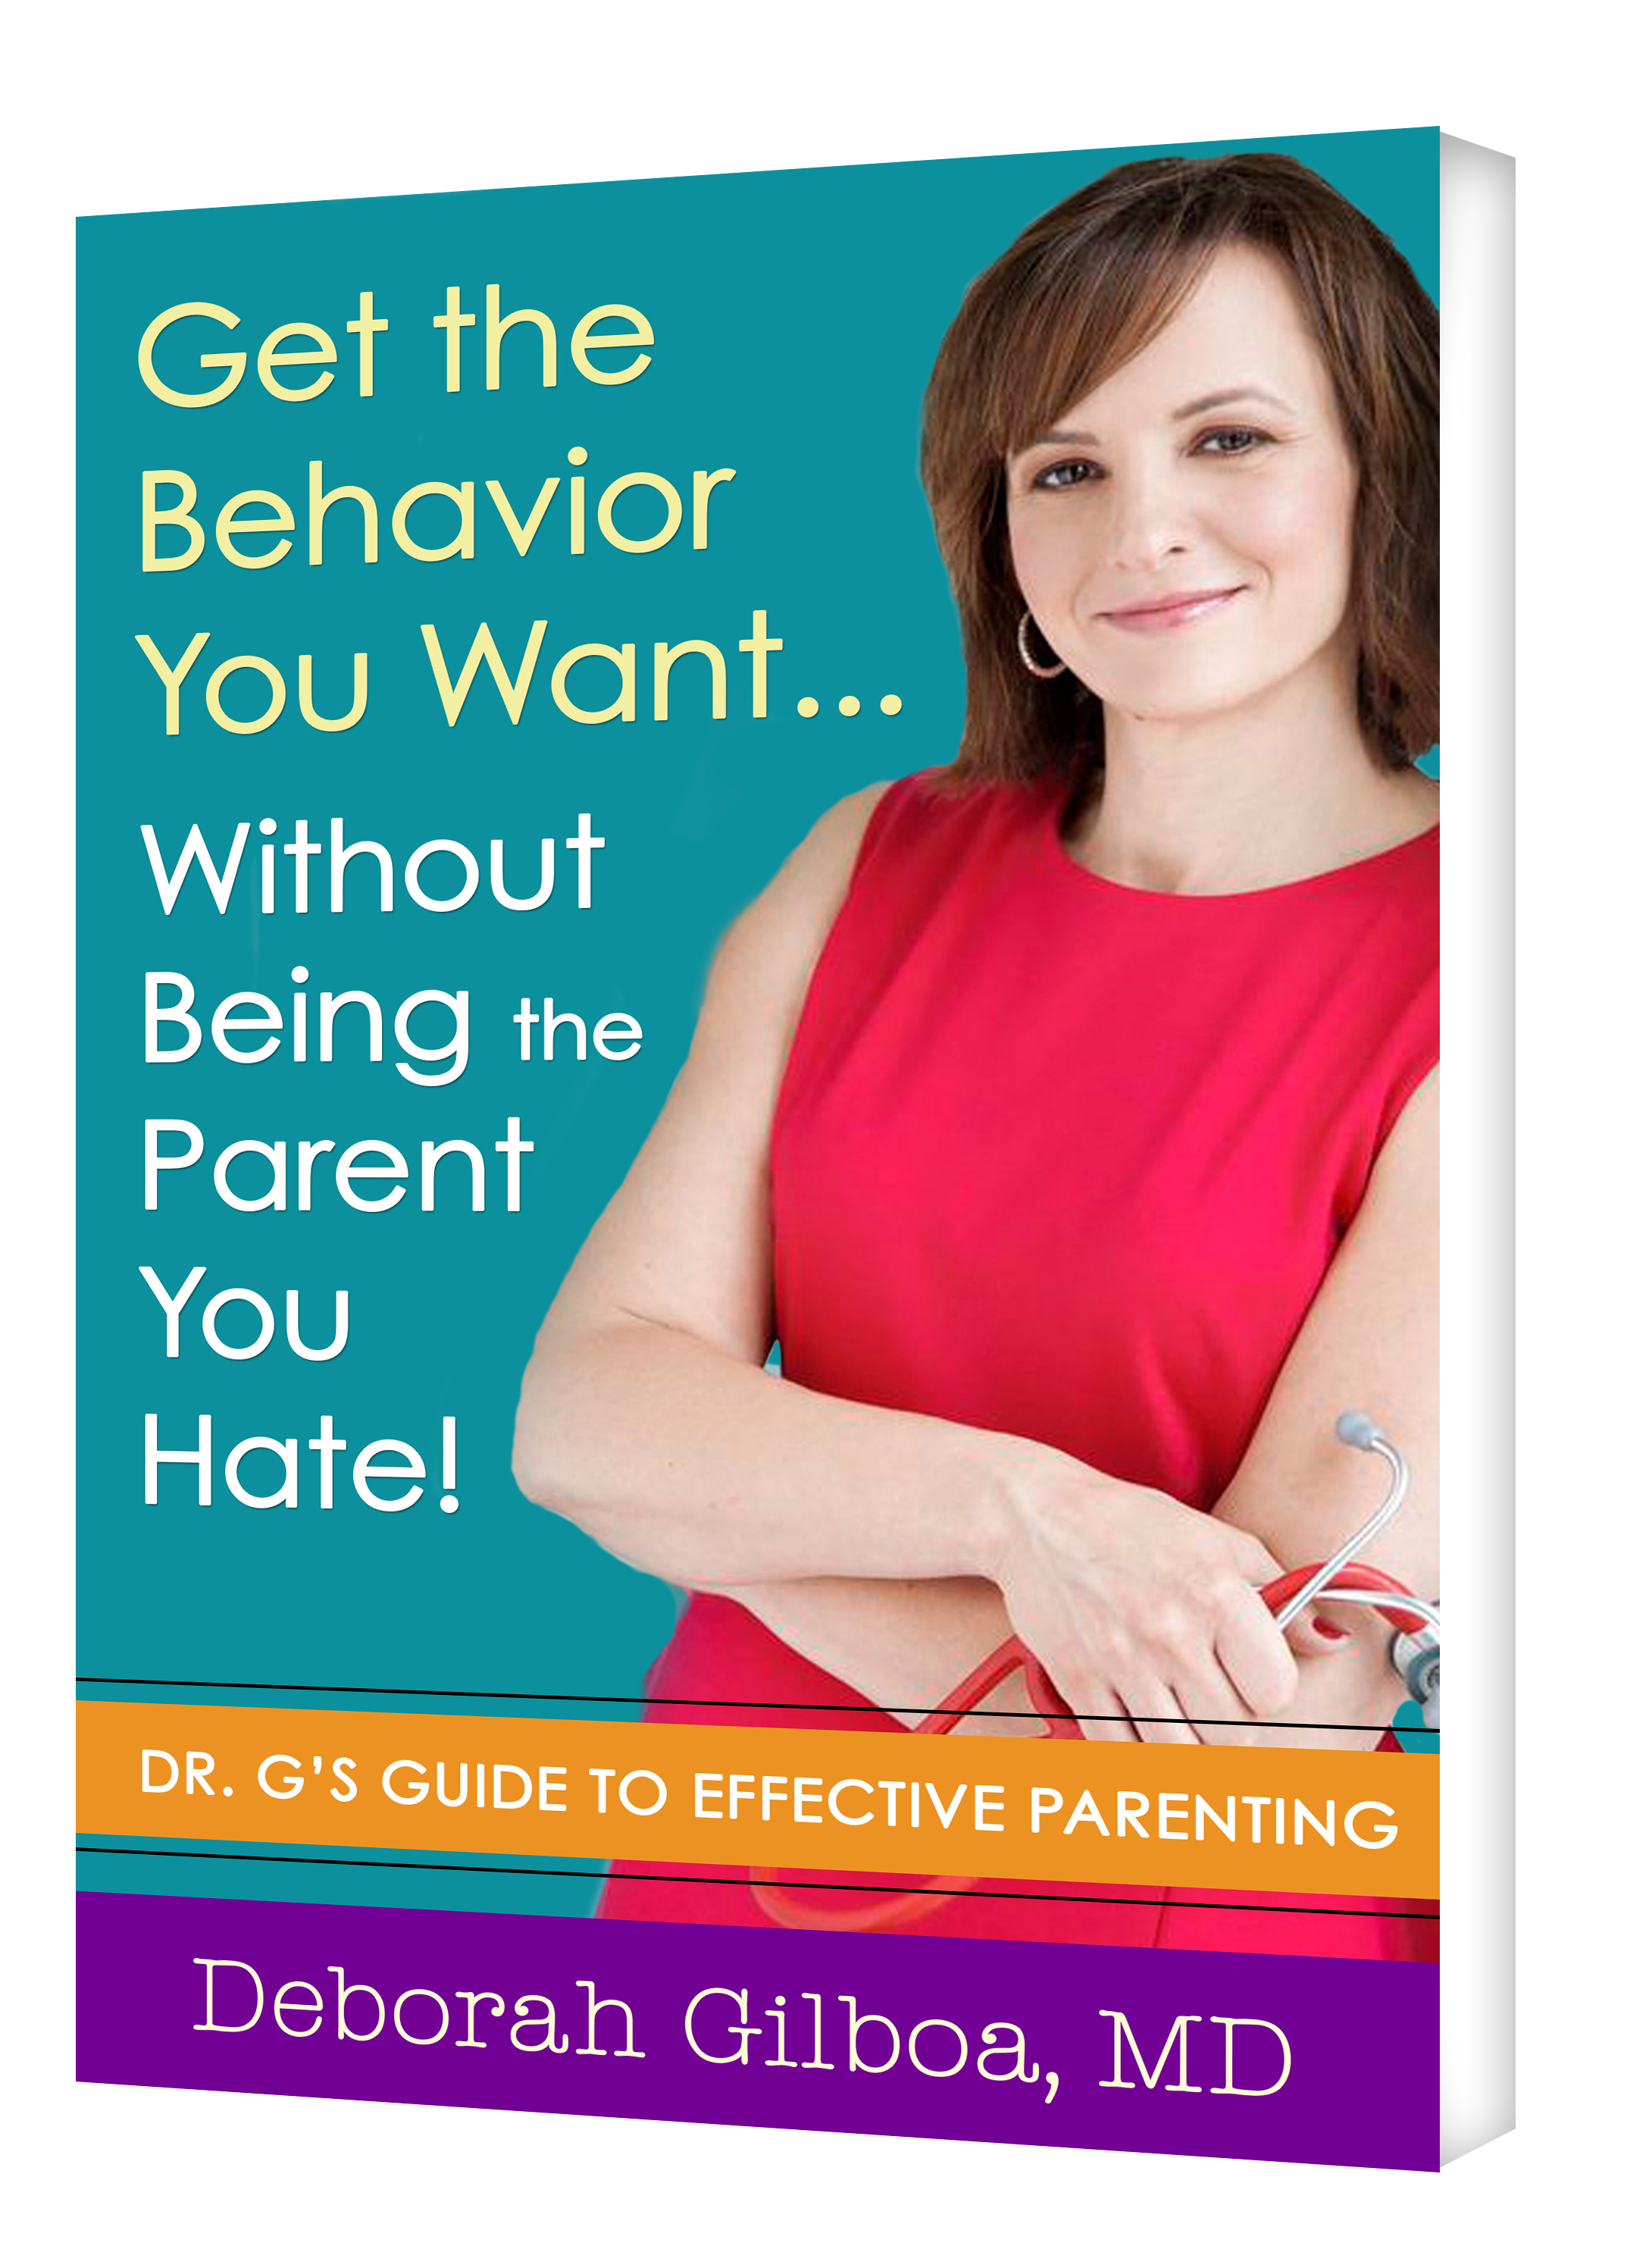 Get Dr. G's book!